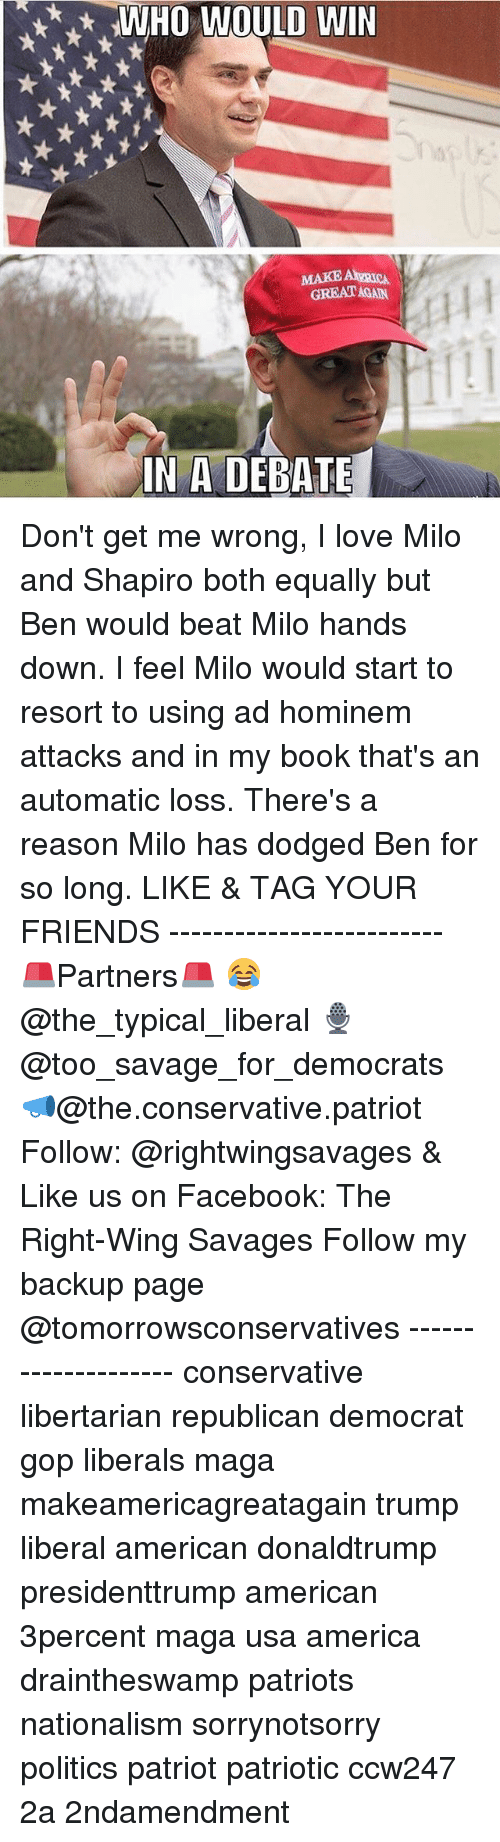 America, Facebook, and Friends: WHO WOULD WIN  MAKE ARICA  GREAT AGAN  ai  IN A DEBATE Don't get me wrong, I love Milo and Shapiro both equally but Ben would beat Milo hands down. I feel Milo would start to resort to using ad hominem attacks and in my book that's an automatic loss. There's a reason Milo has dodged Ben for so long. LIKE & TAG YOUR FRIENDS ------------------------- 🚨Partners🚨 😂@the_typical_liberal 🎙@too_savage_for_democrats 📣@the.conservative.patriot Follow: @rightwingsavages & Like us on Facebook: The Right-Wing Savages Follow my backup page @tomorrowsconservatives -------------------- conservative libertarian republican democrat gop liberals maga makeamericagreatagain trump liberal american donaldtrump presidenttrump american 3percent maga usa america draintheswamp patriots nationalism sorrynotsorry politics patriot patriotic ccw247 2a 2ndamendment